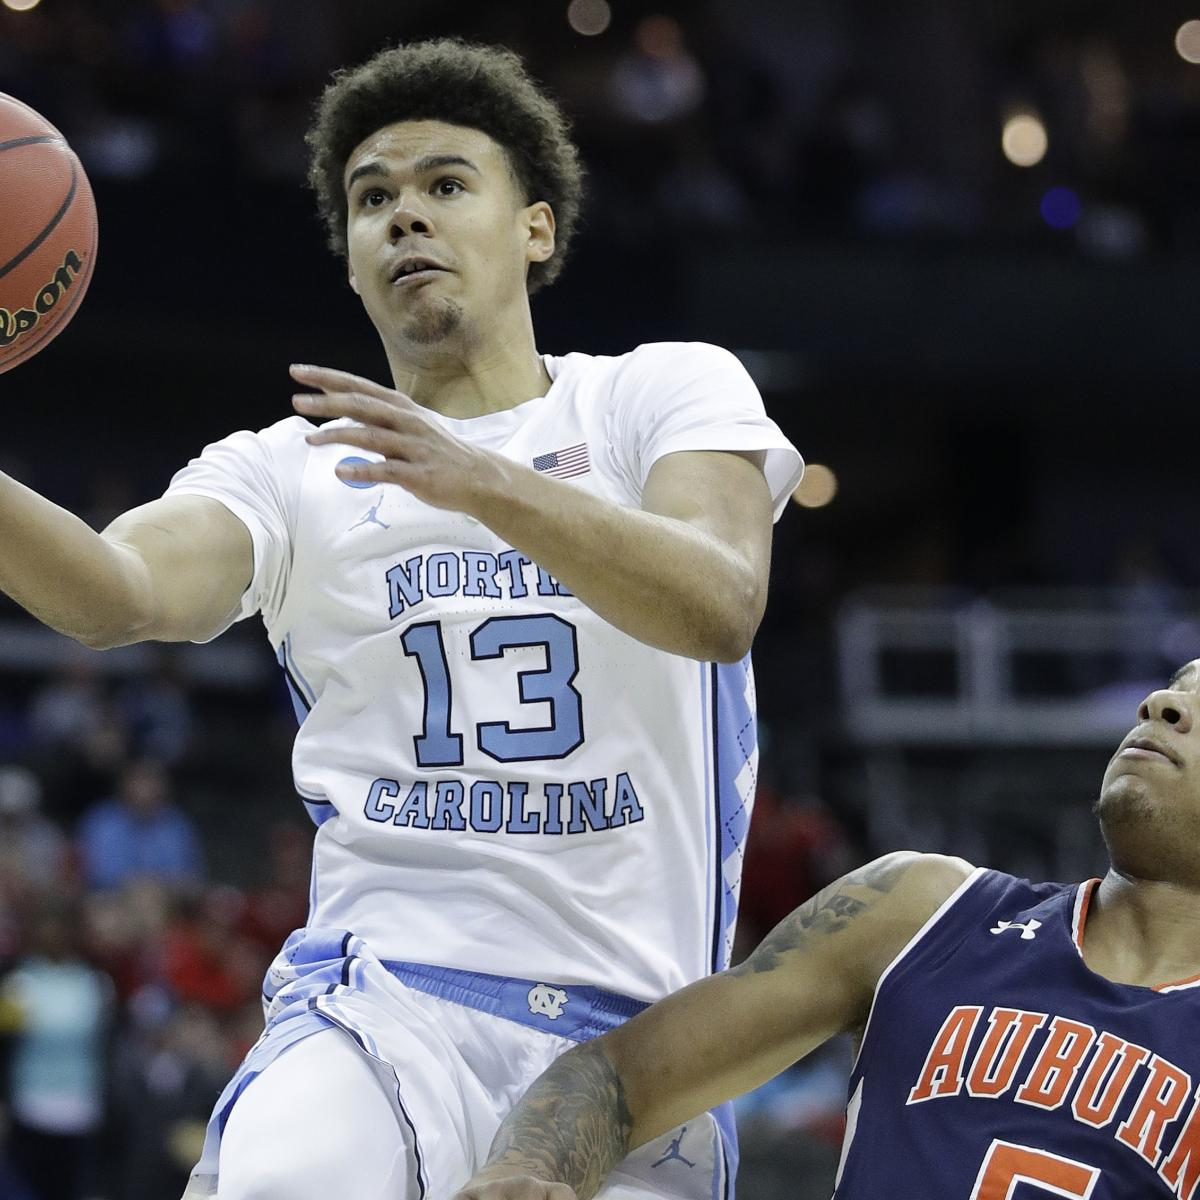 T Of C Alums 2017 Nba Draft: 2019 NBA Mock Draft: Predictions And Projections For Top